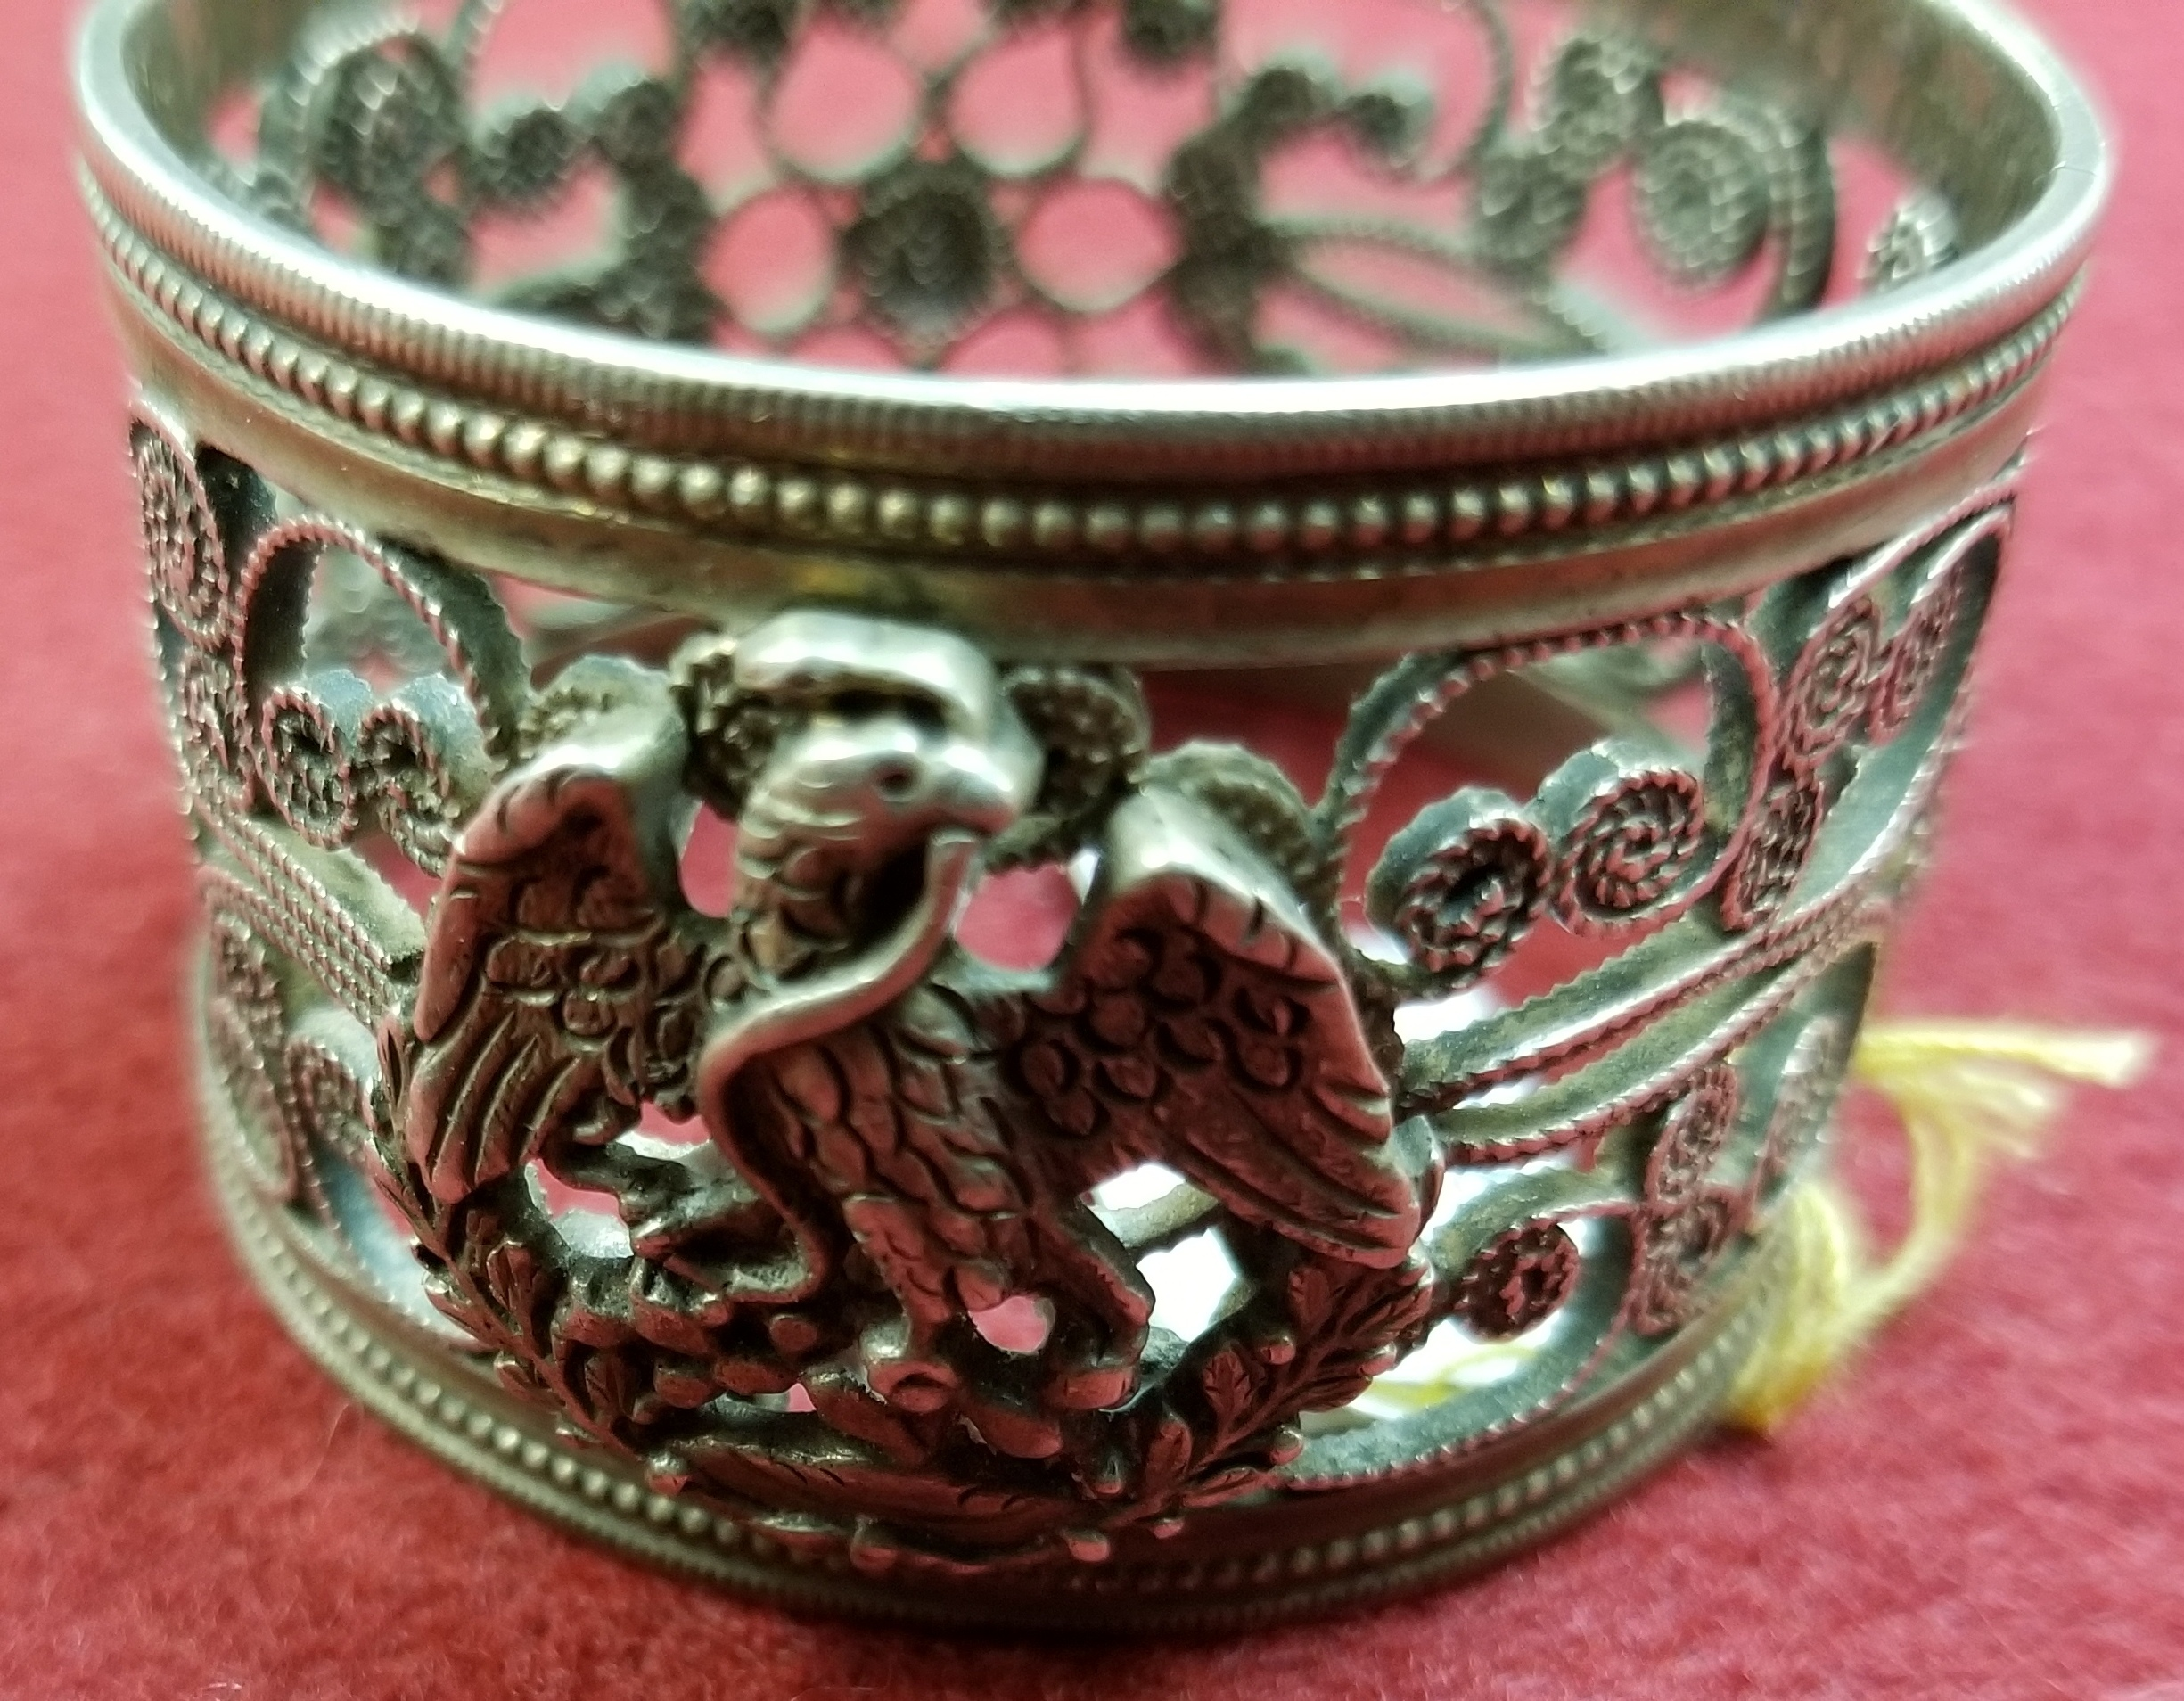 COLLECTIBLES: SILVER NAPKIN RING  EAGLE W/ SNAKE IN MOUTH & PAISLEY TYPE DESIGN